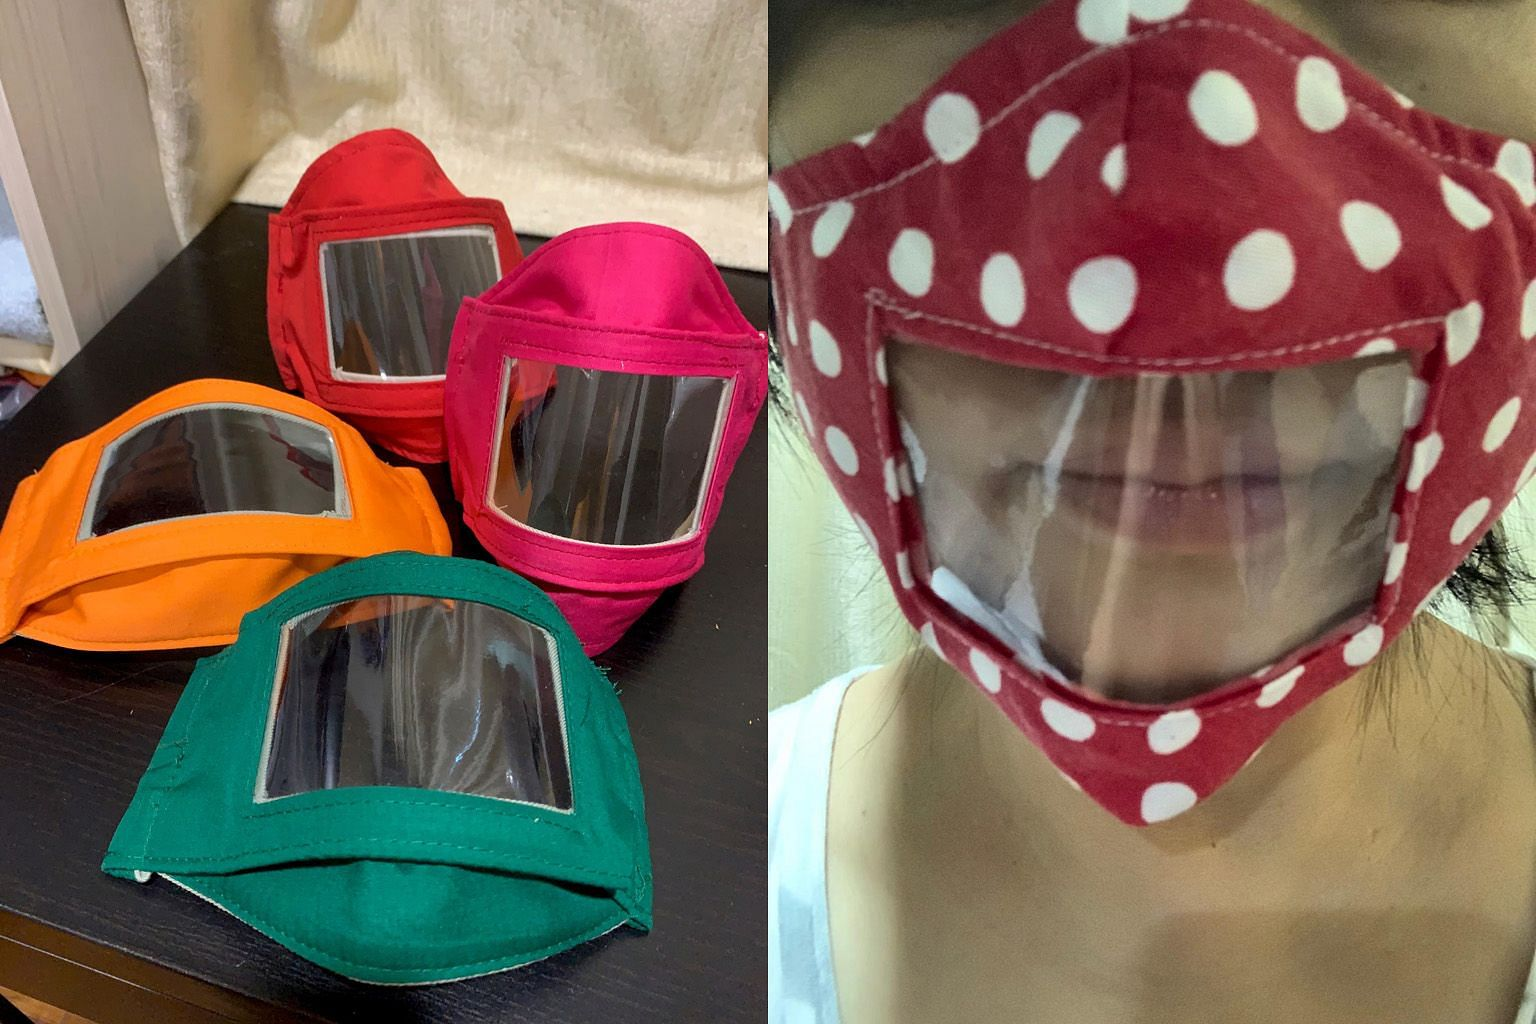 (Above) One of the prototypes for the specially designed masks that Ms Chan Siang Choo and Ms Rebecca Teo made for teachers of deaf students. They started to use solid colours (left) for the masks rather than patterned materials after feedback that t